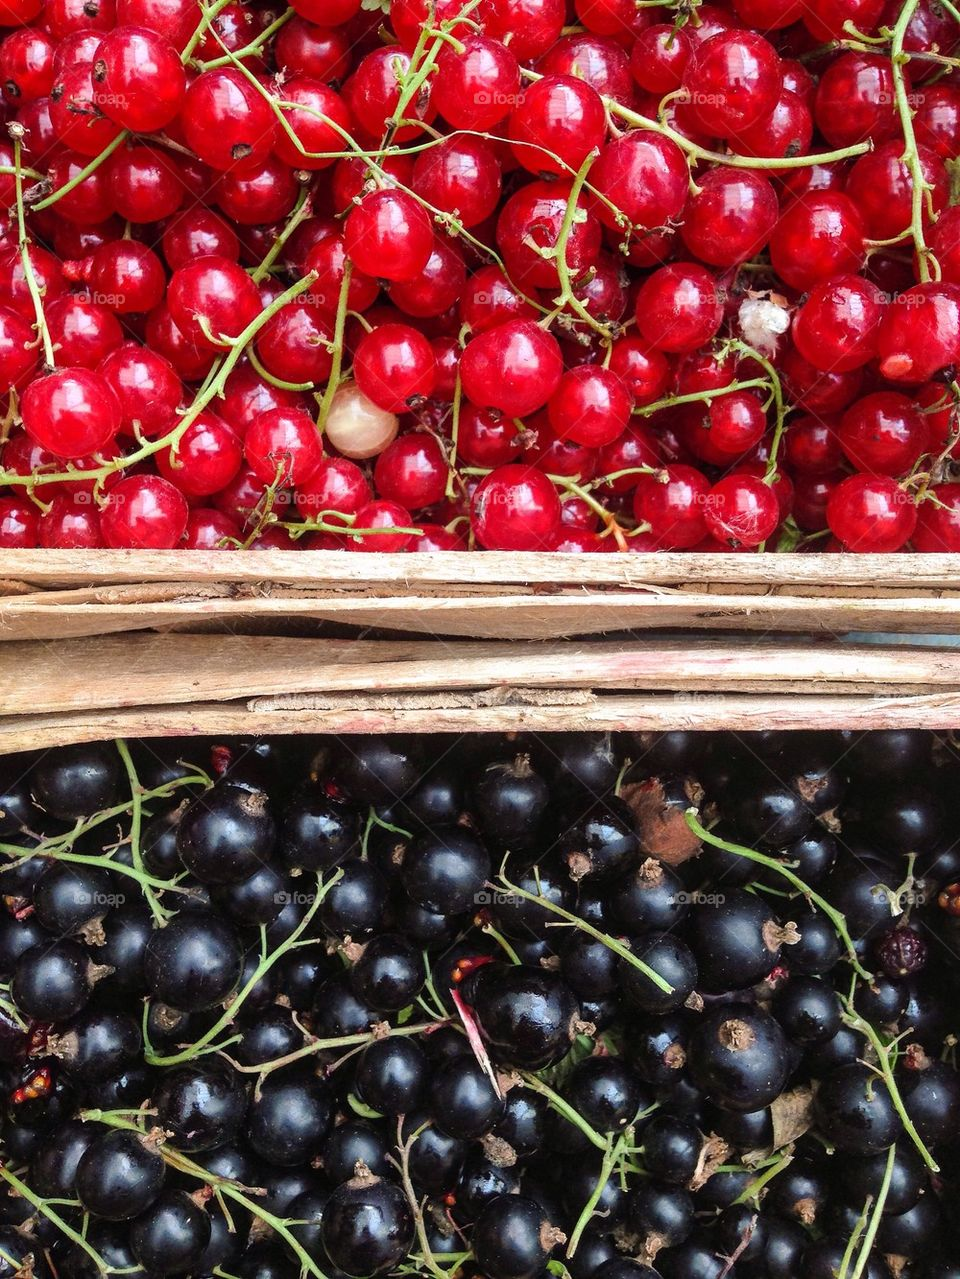 Red currants and black currants